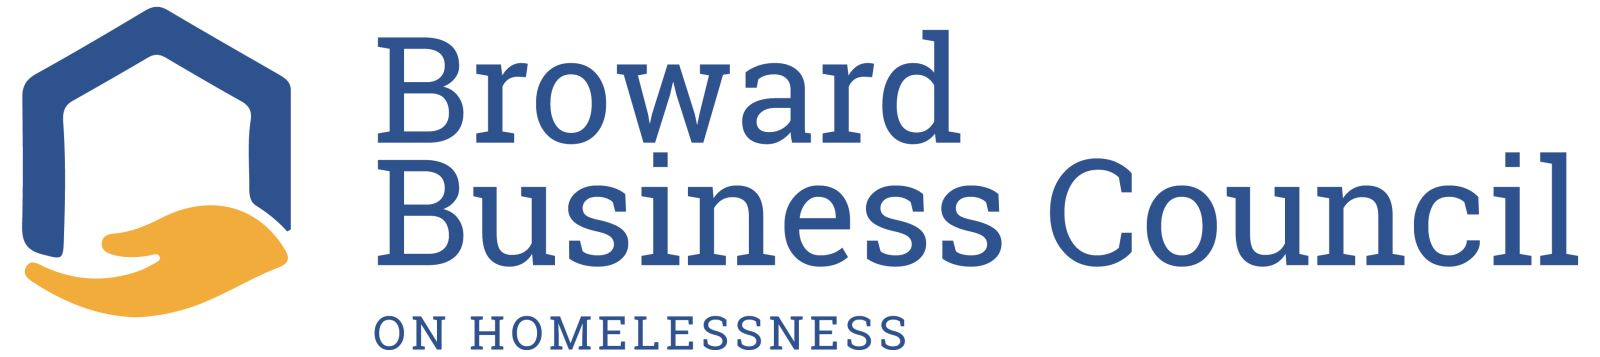 Broward Business Council on Homelessness